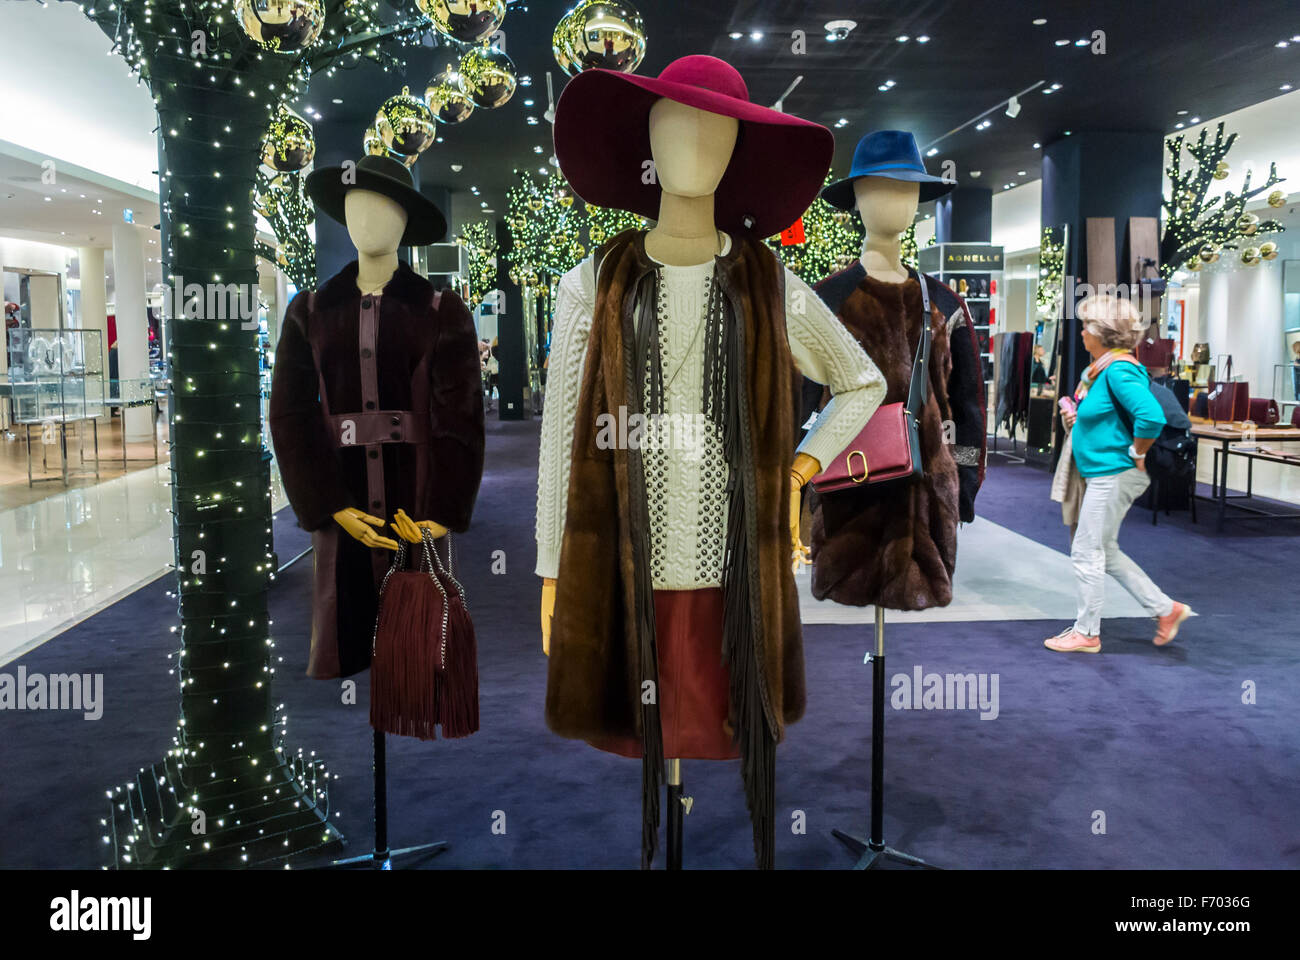 paris france clothes mannequins on display christmas deco luxury stock photo 90356968 alamy. Black Bedroom Furniture Sets. Home Design Ideas